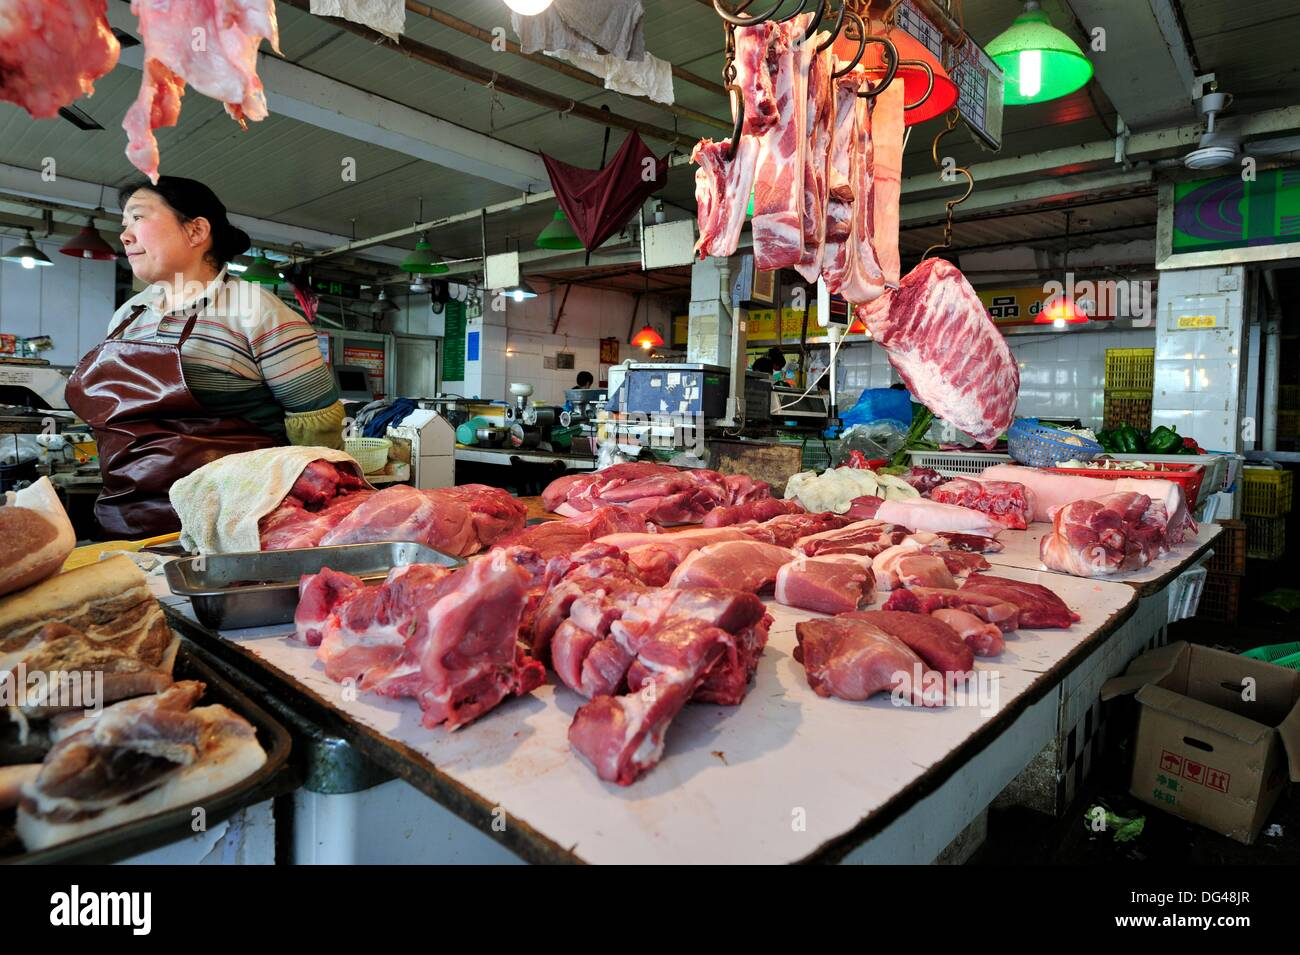 meat market stock images - photo #23